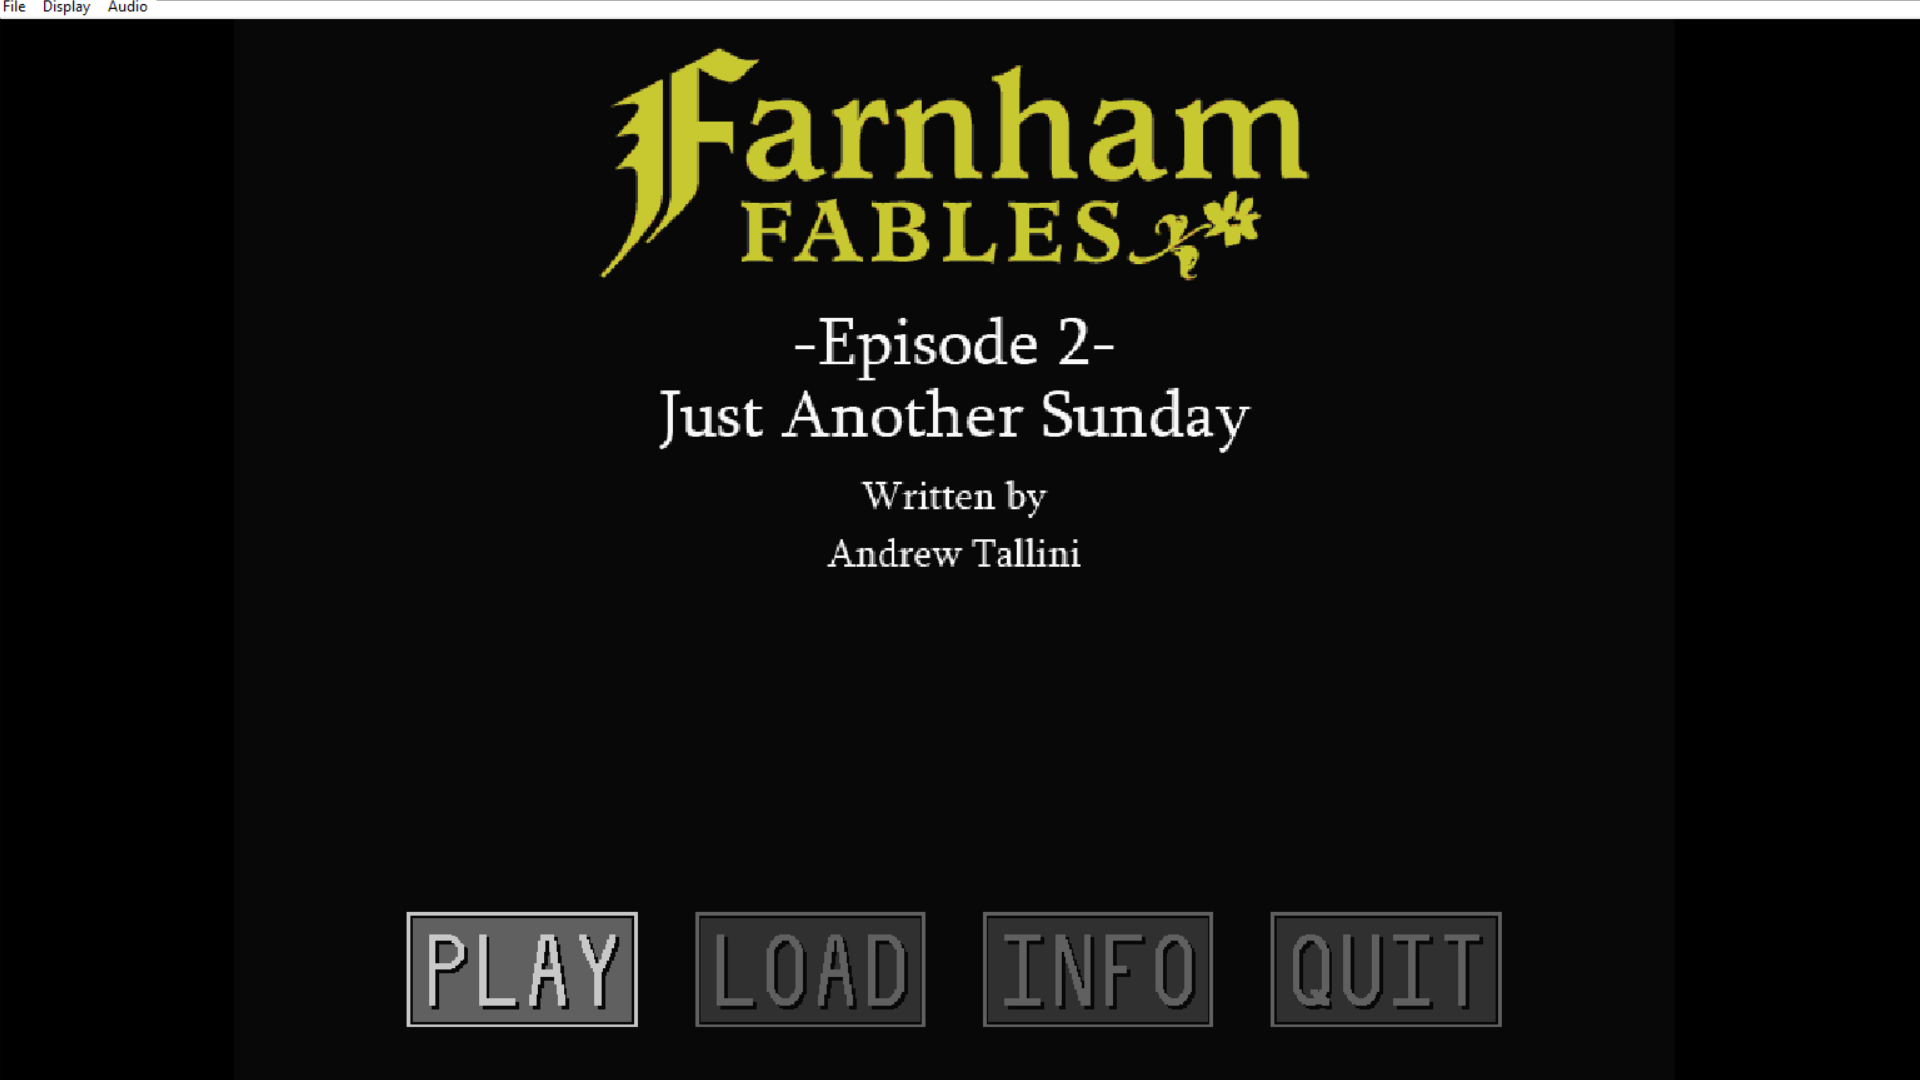 Farnham Fables Episode 2 Review - How to Get On a List - http://techraptor.net/content/farnham-fables-episode-2-review | Gaming, Reviews